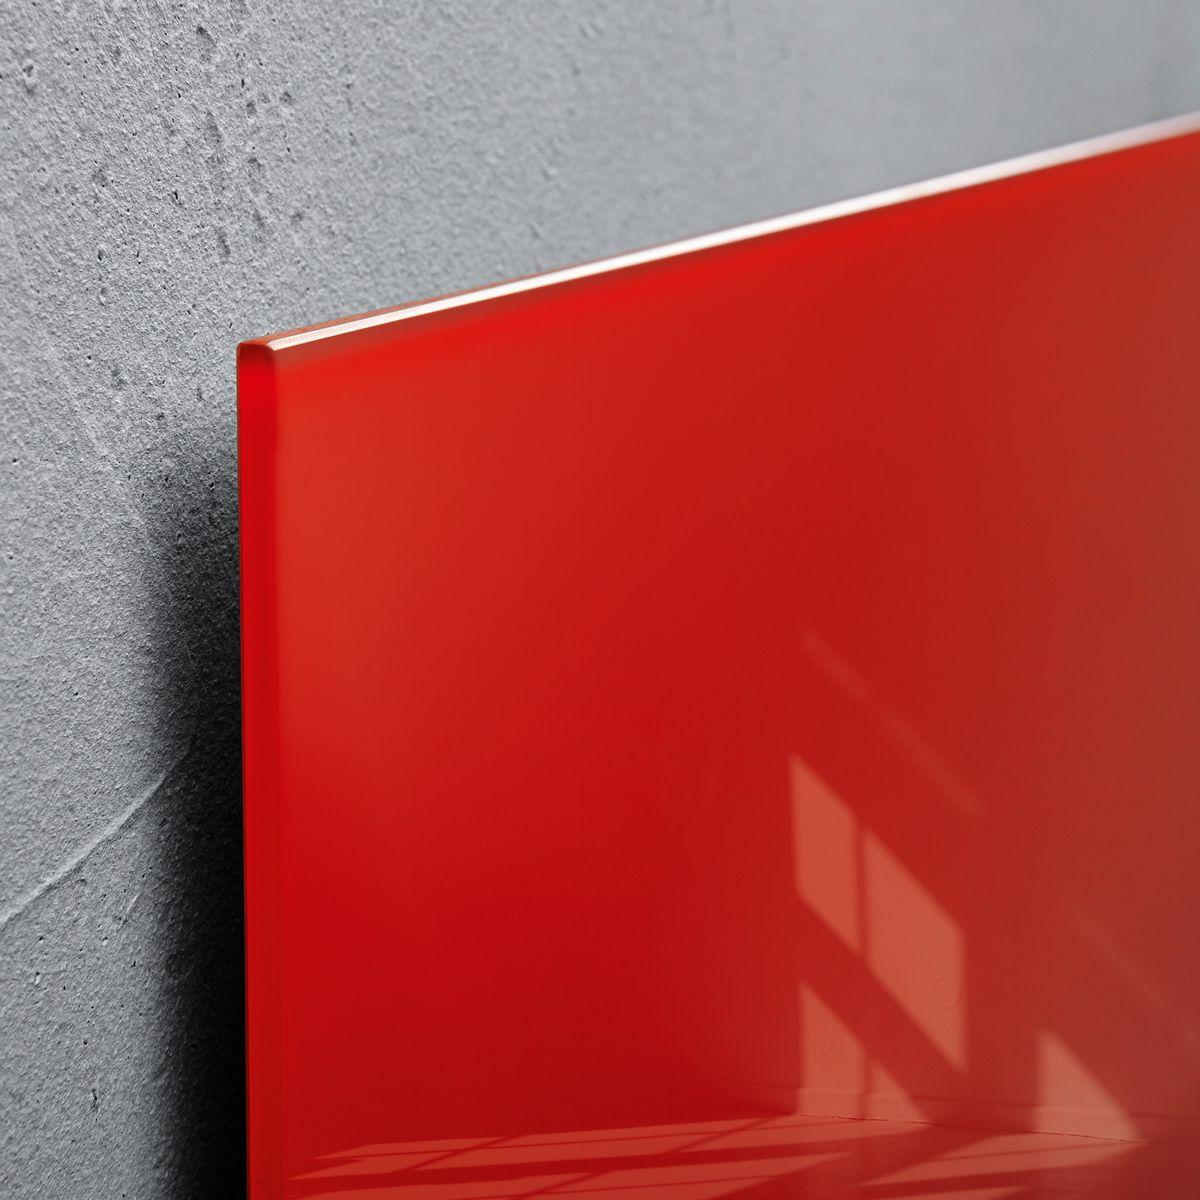 Glasmagnetboard-artverum-Detail-01-rot